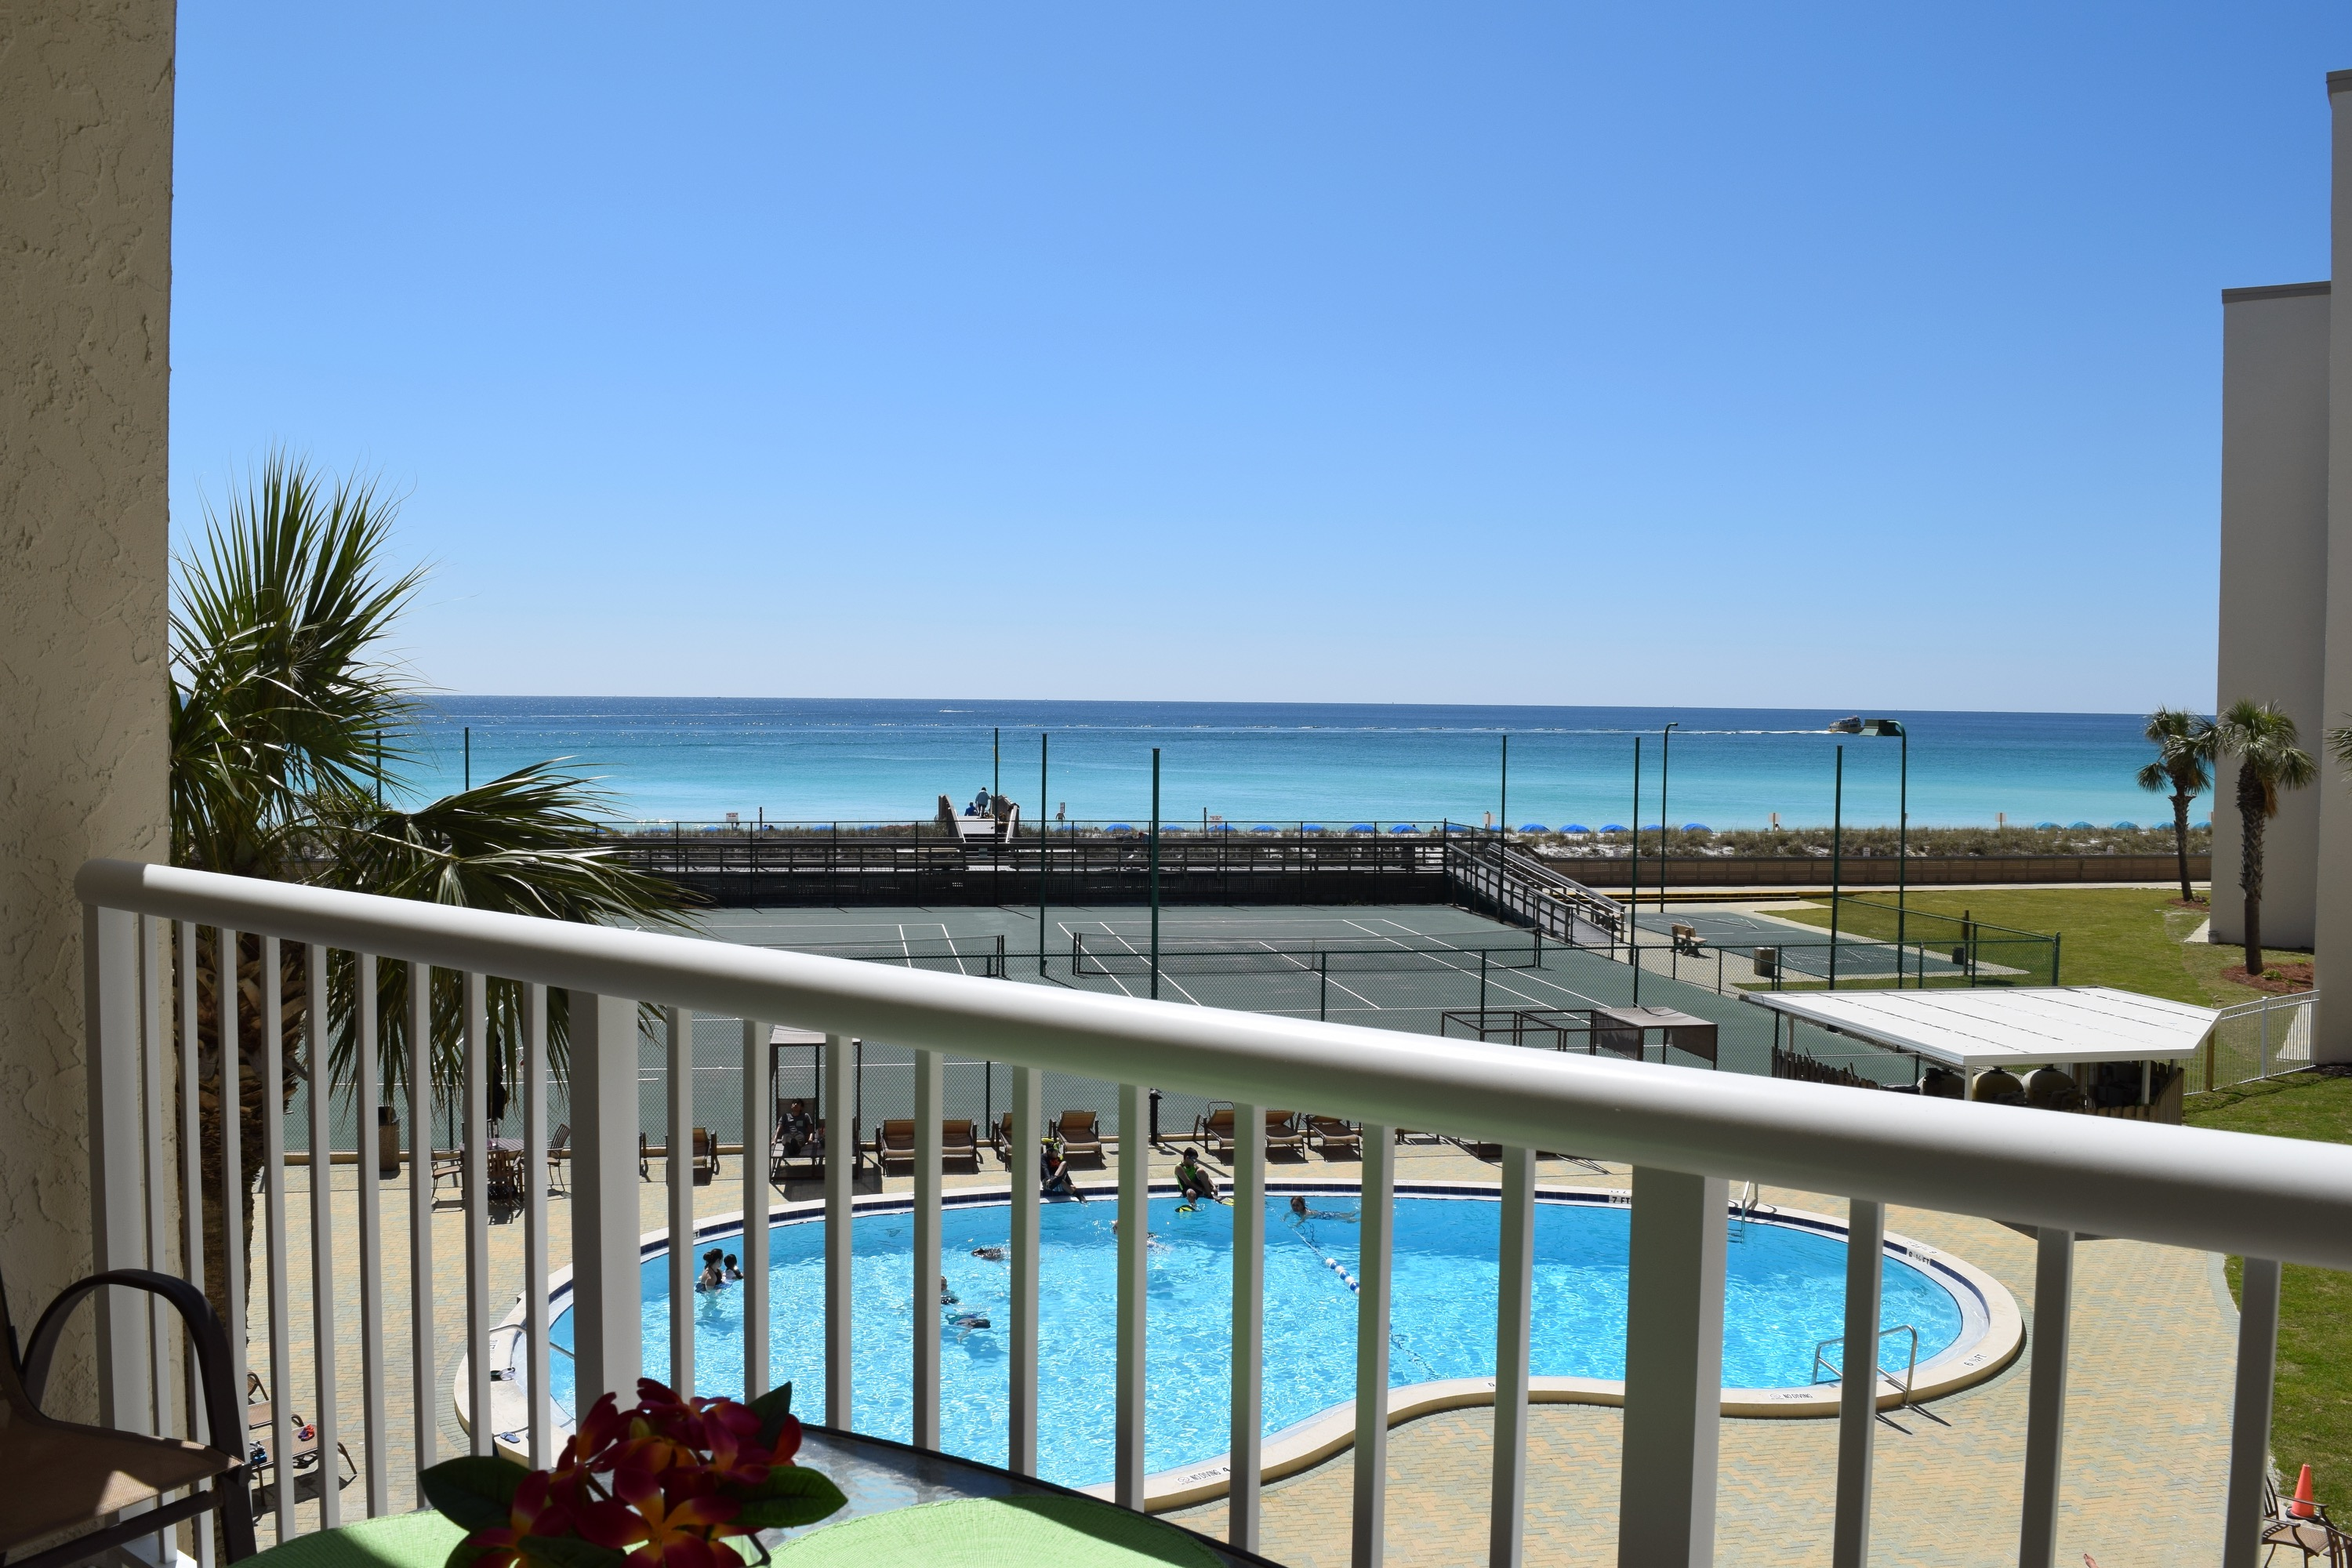 Holiday Surf & Racquet Club 314 Condo rental in Holiday Surf & Racquet Club in Destin Florida - #1